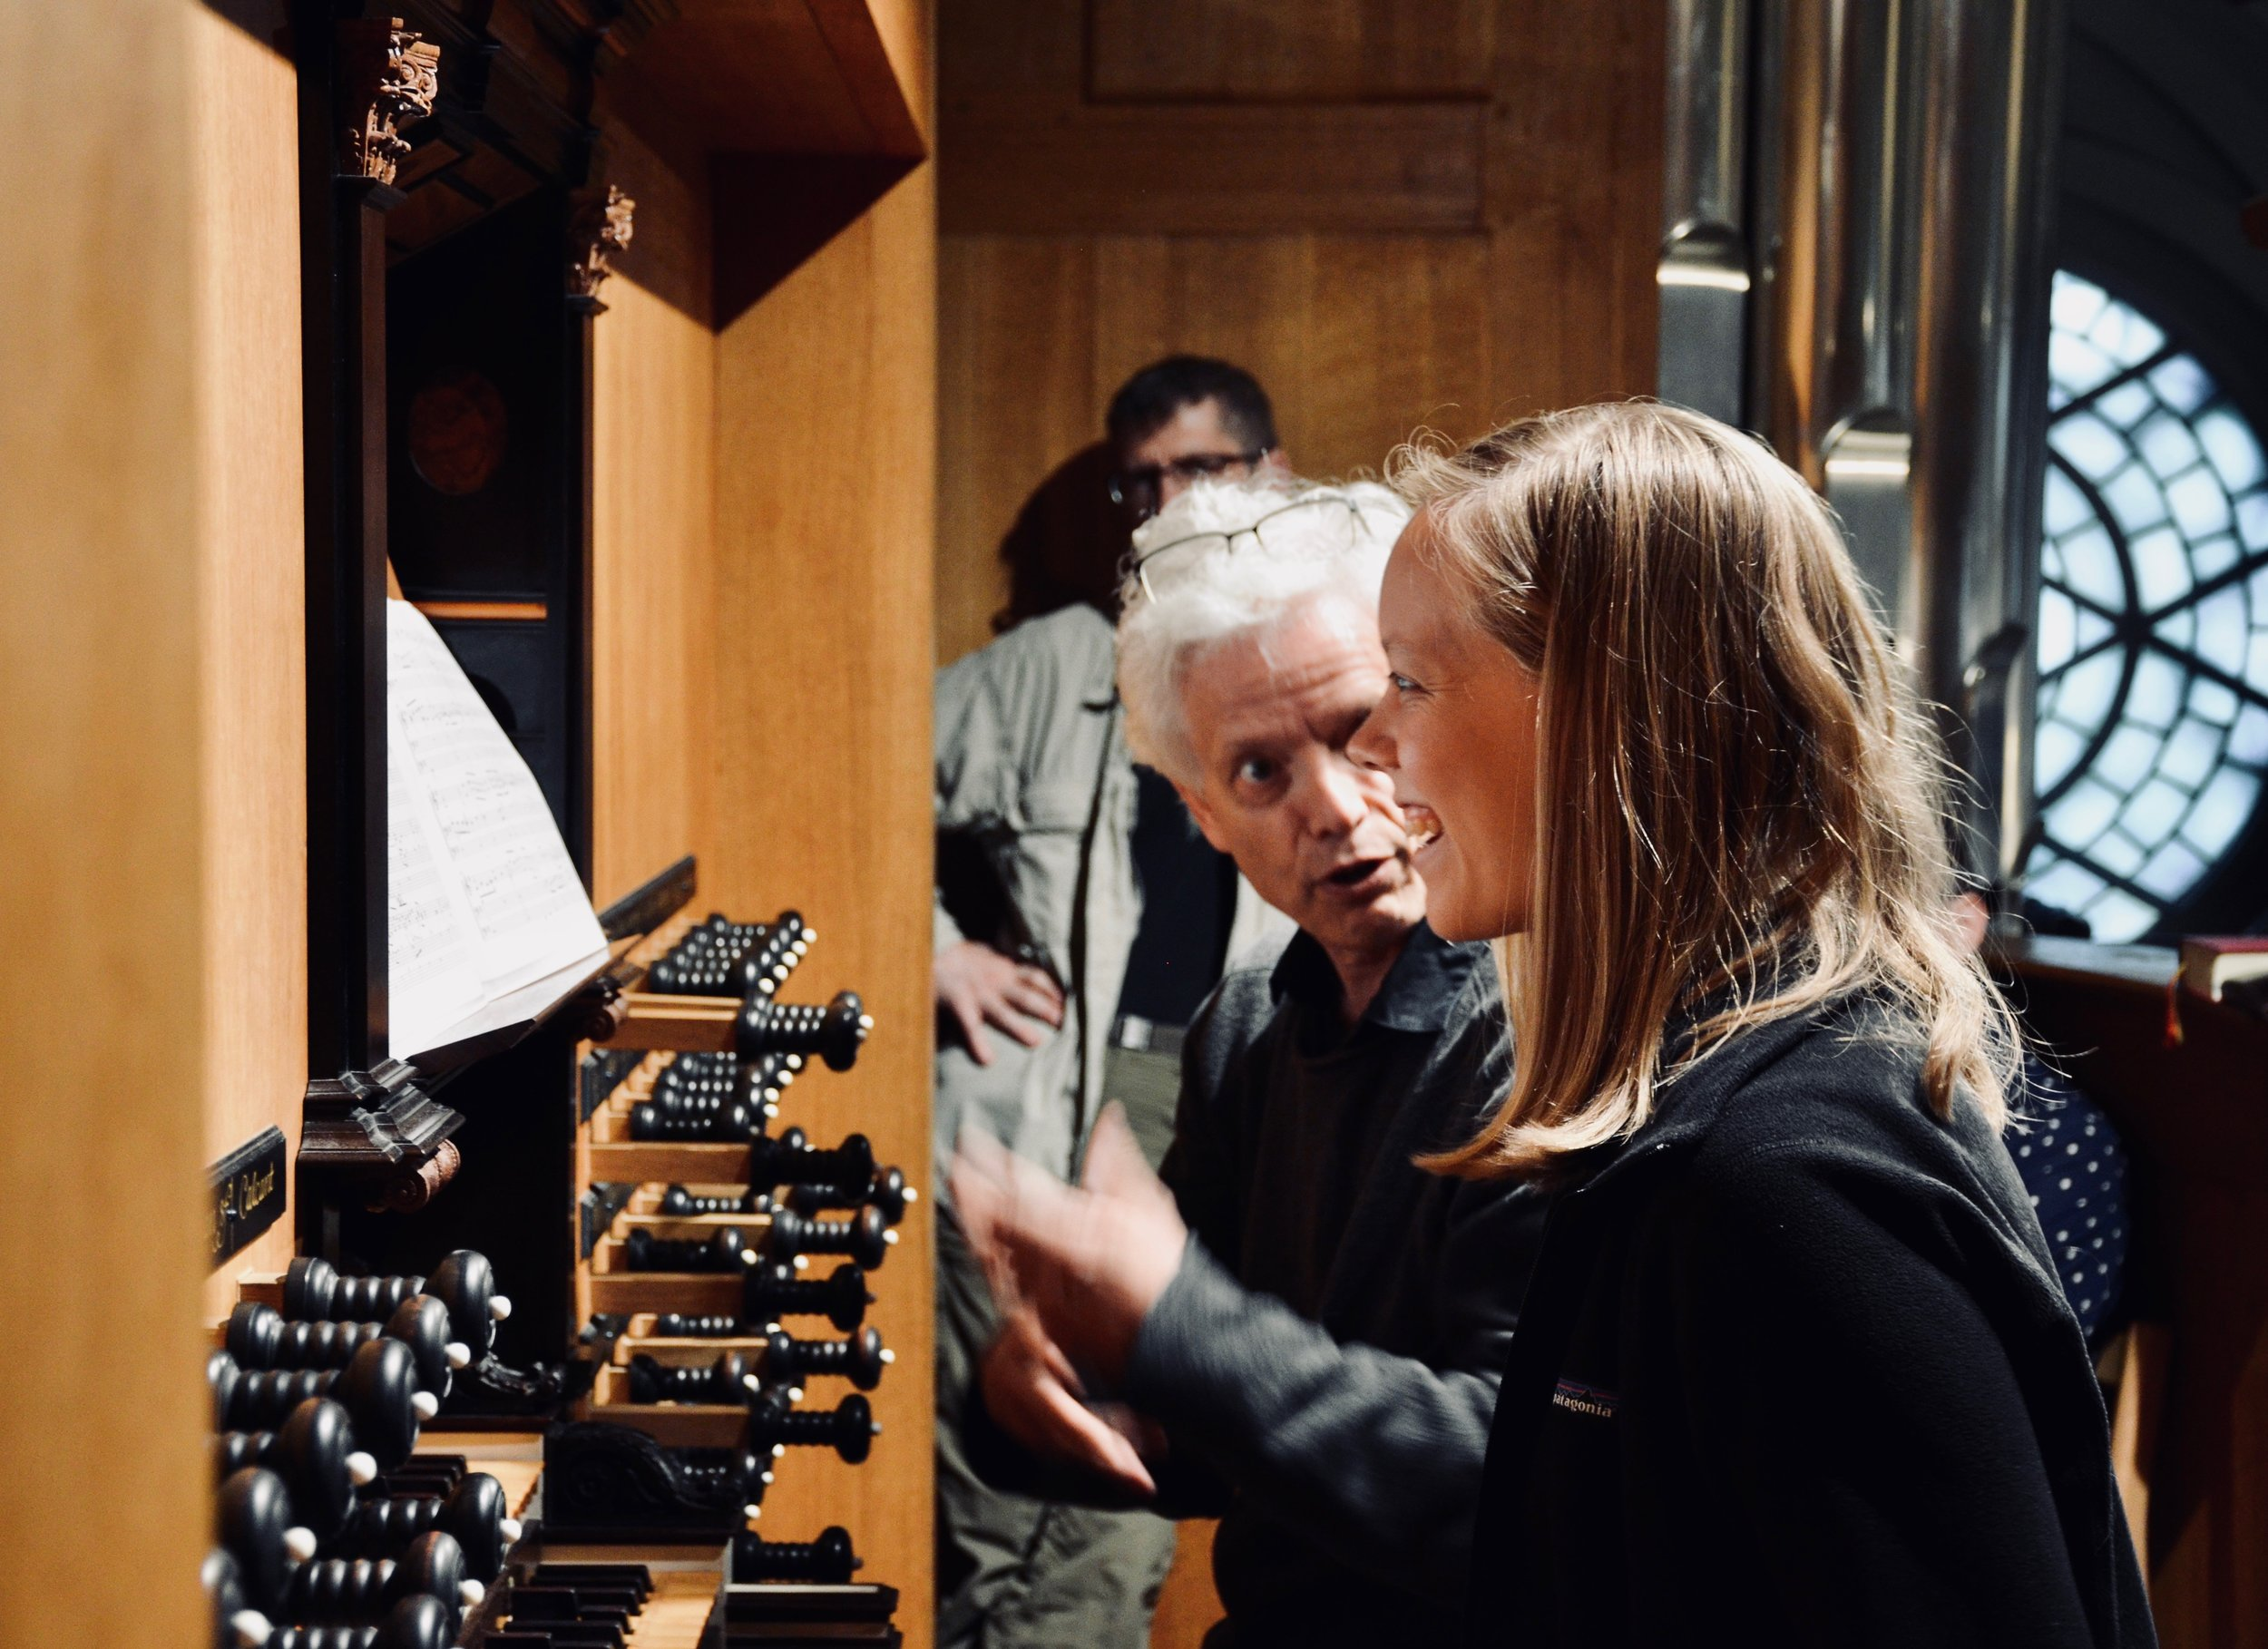 Hans Davidsson coaches Laura Gullett on the 2000 GoART North German Baroque Research Organ in Örgryte New Church, Göteborg, Sweden.